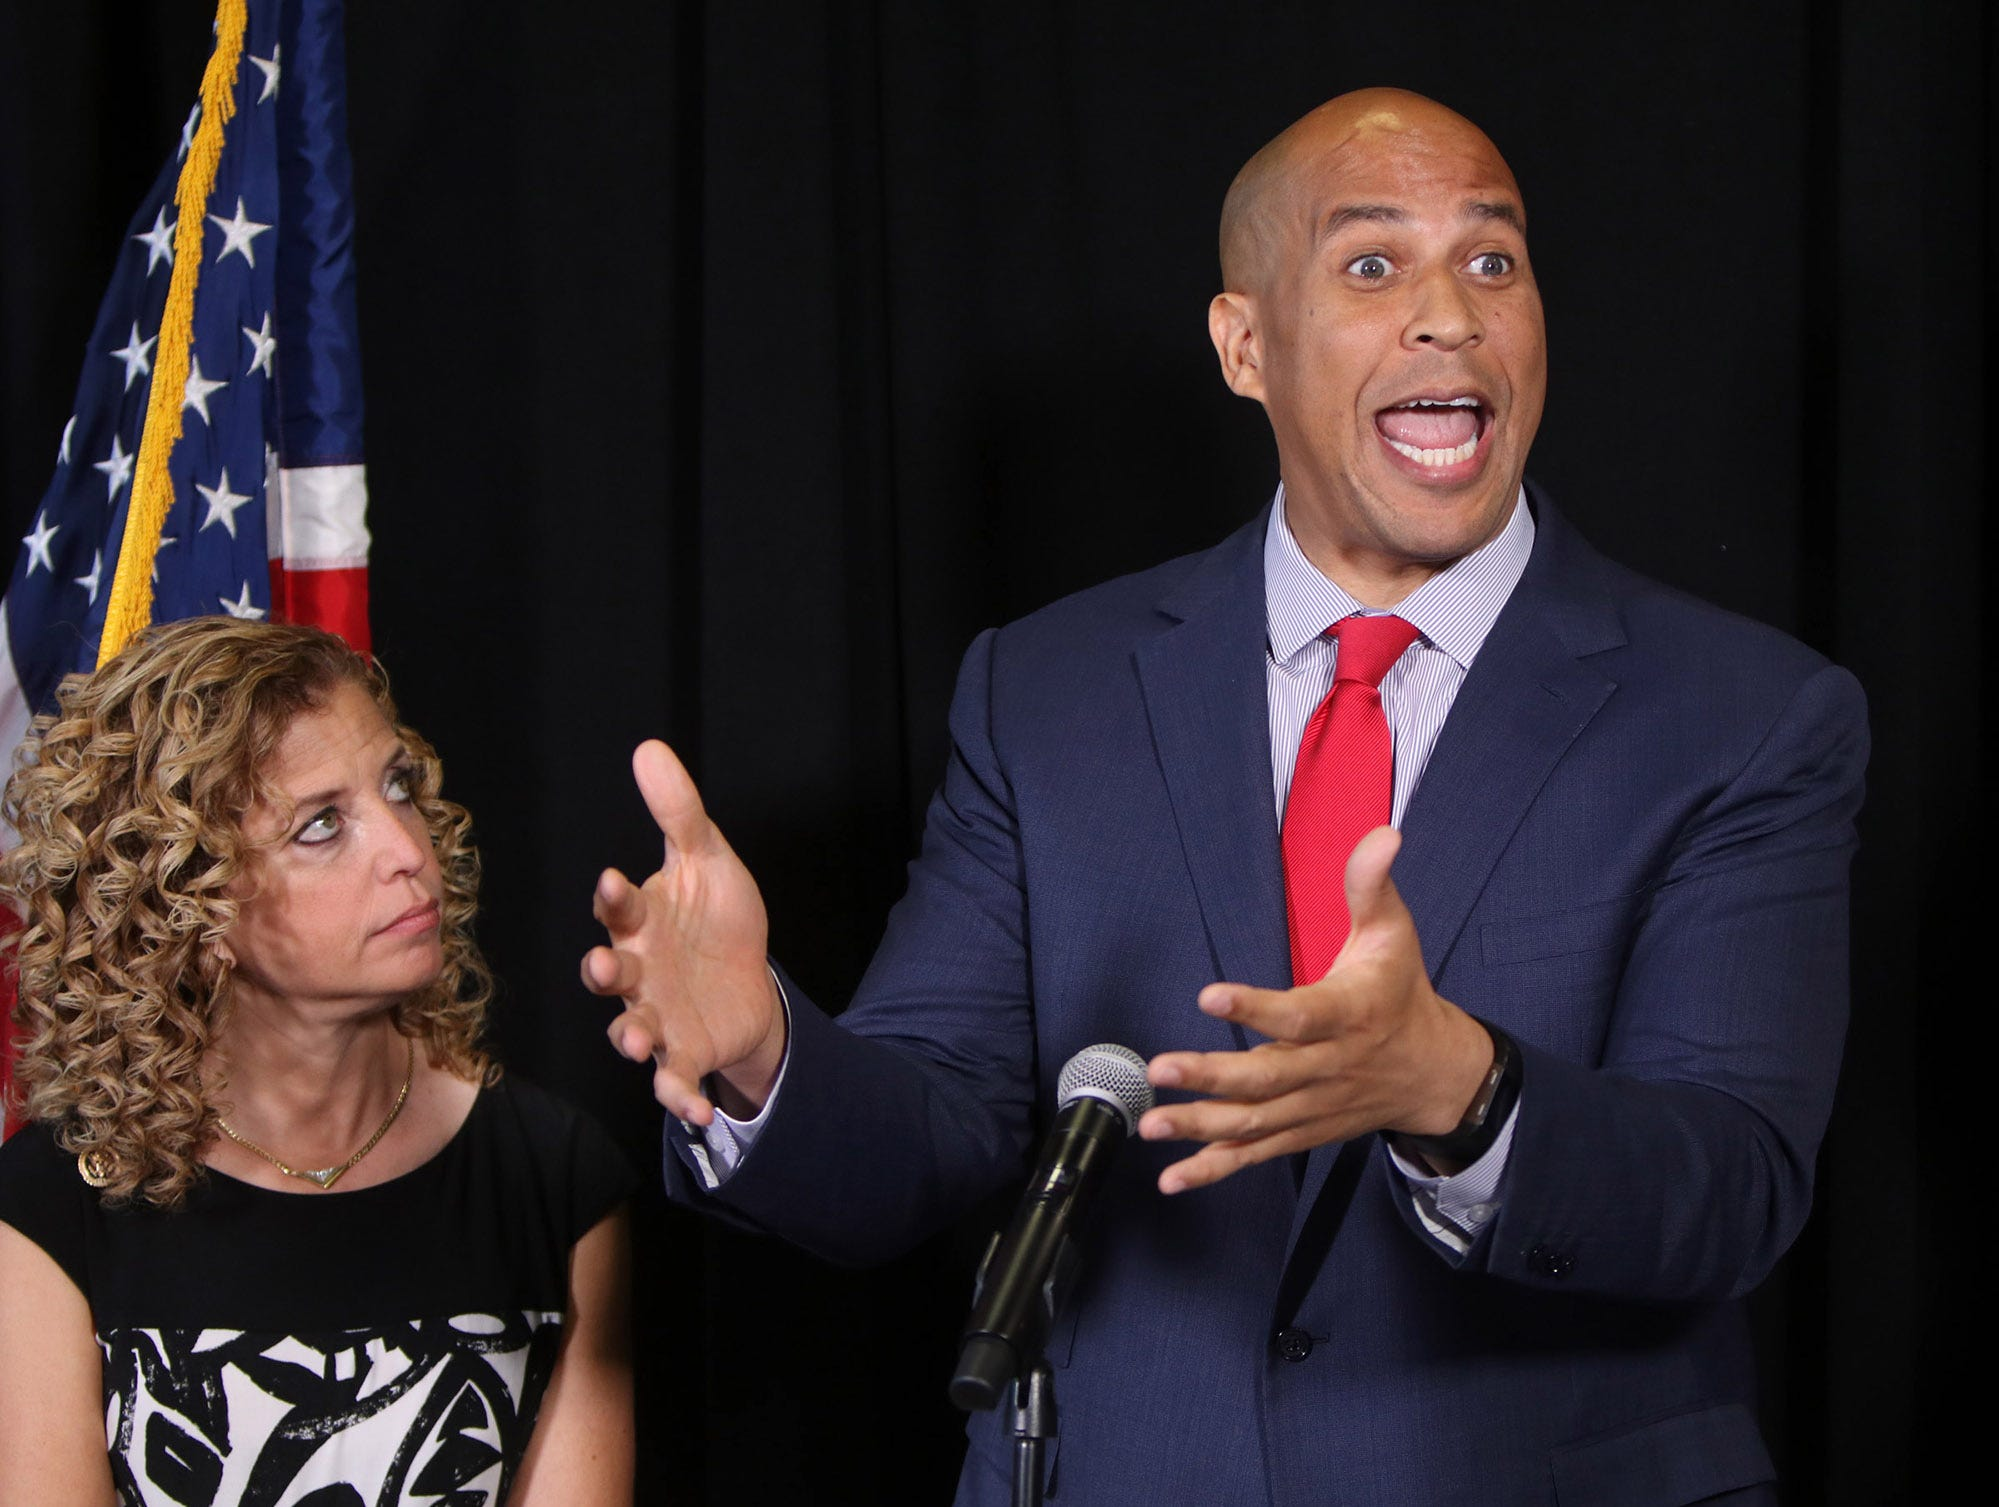 DNC Chairwoman Debbie Wasserman Schultz watches as US Senator Cory Booker (D-NJ) speaks during a press conference to denounce the divisive rhetoric surrounding Donald Trump's Republican convention. Senator Al Franken (D-MN) also appeared at event that was held at a law office in Cleveland, OH, Thursday July 21, 2016.